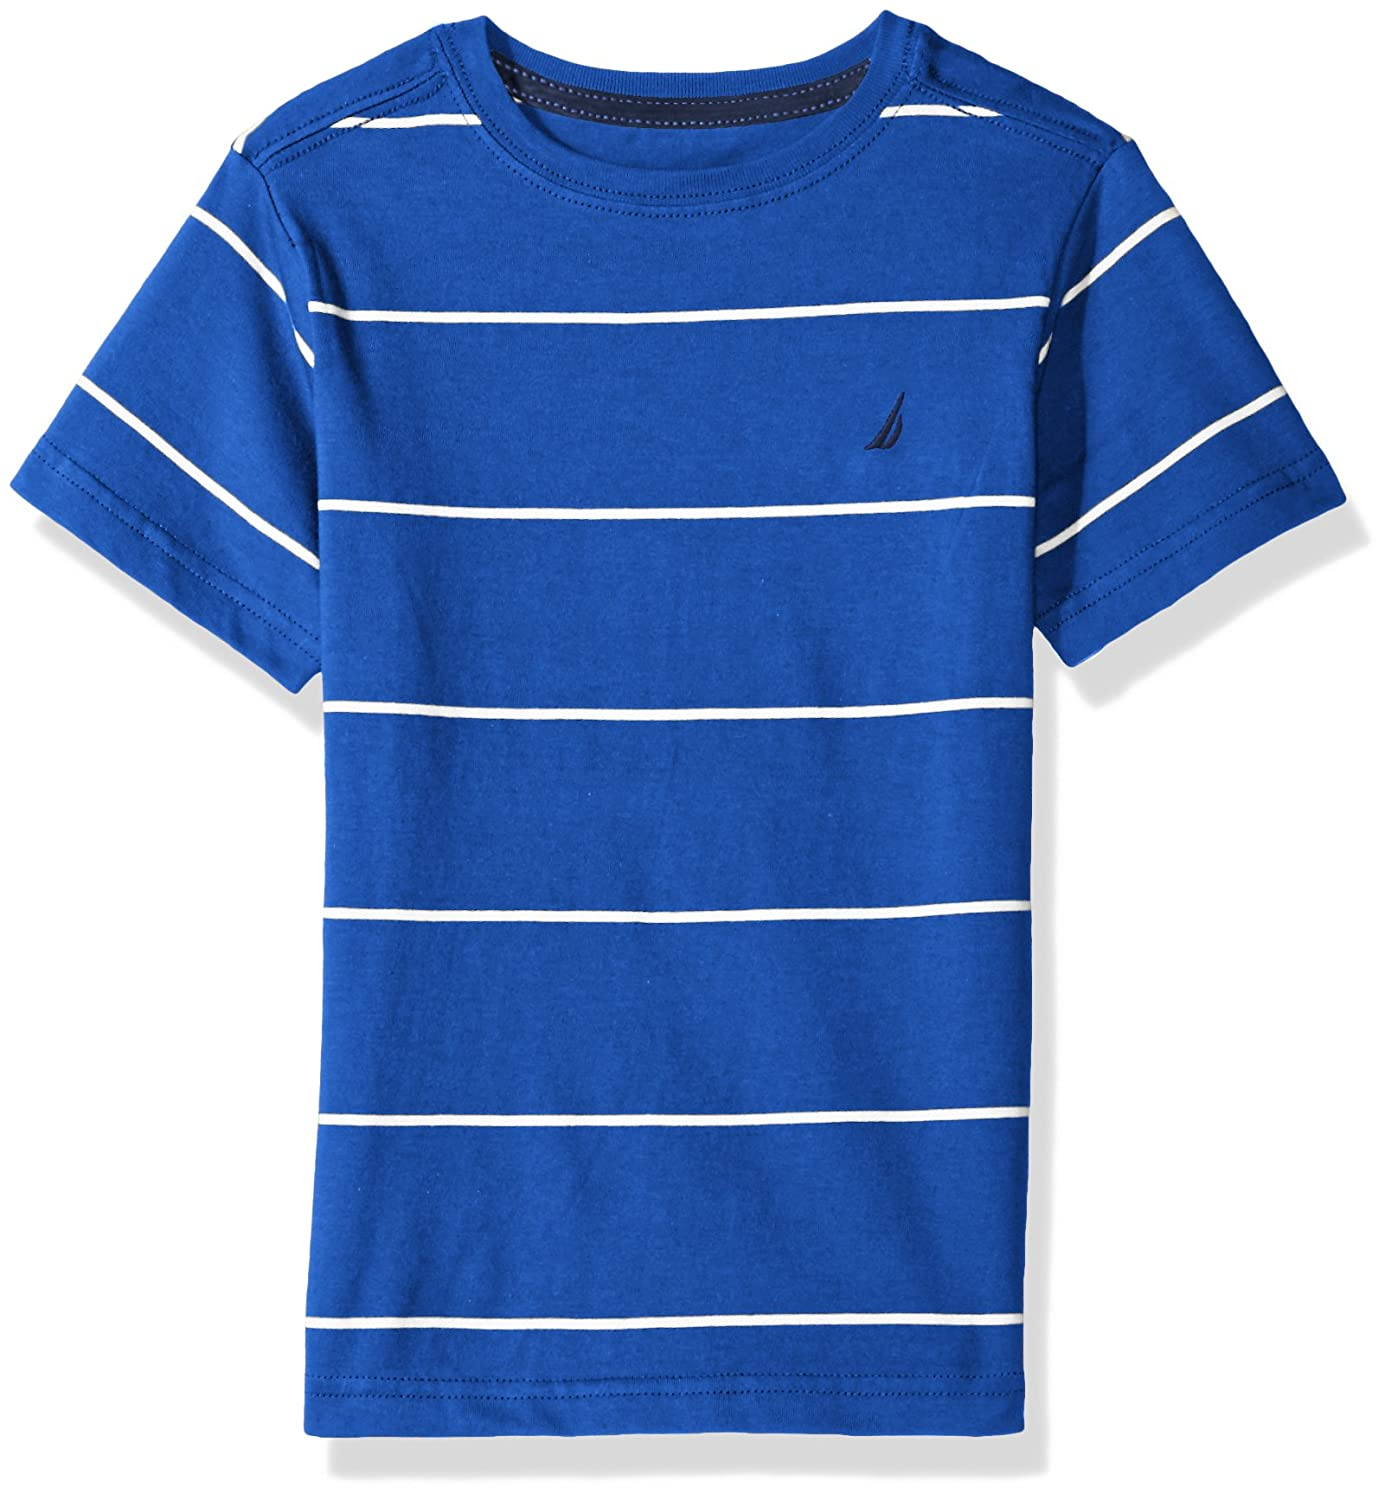 Nautica Boys' Short Sleeve Striped Crew-Neck T-Shirt